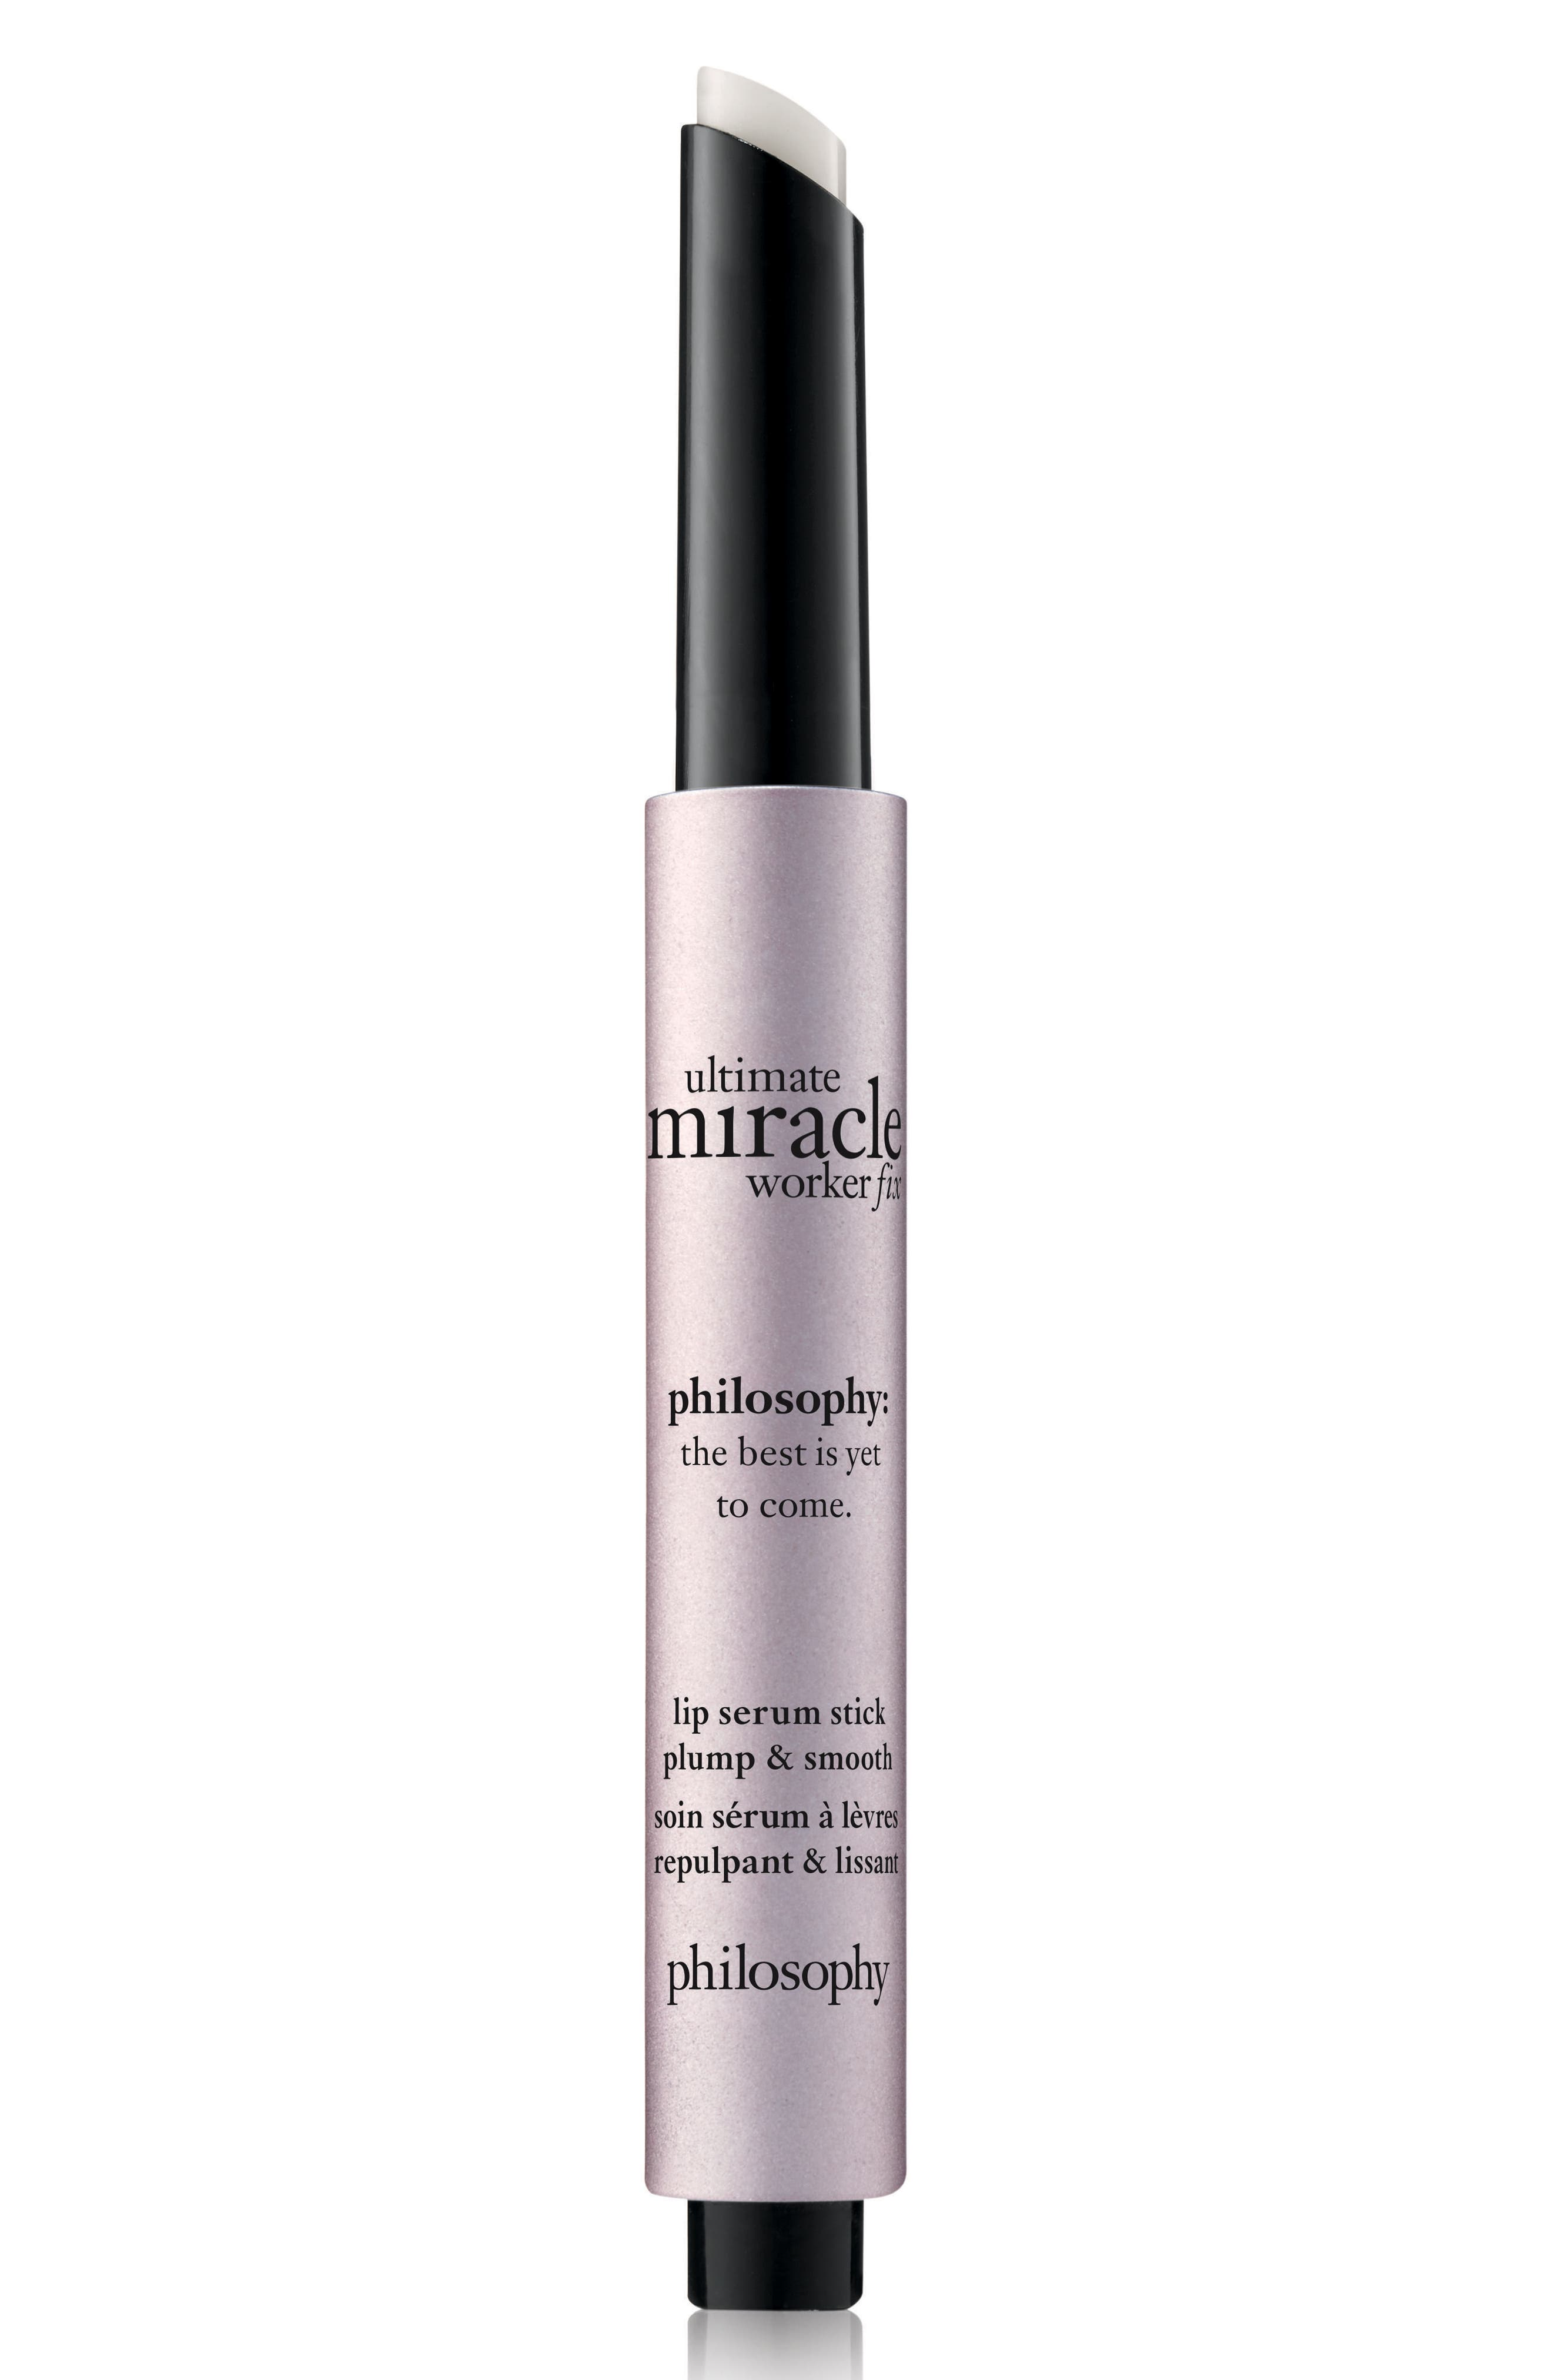 ultimate miracle worker lip fix,                             Alternate thumbnail 2, color,                             No Color